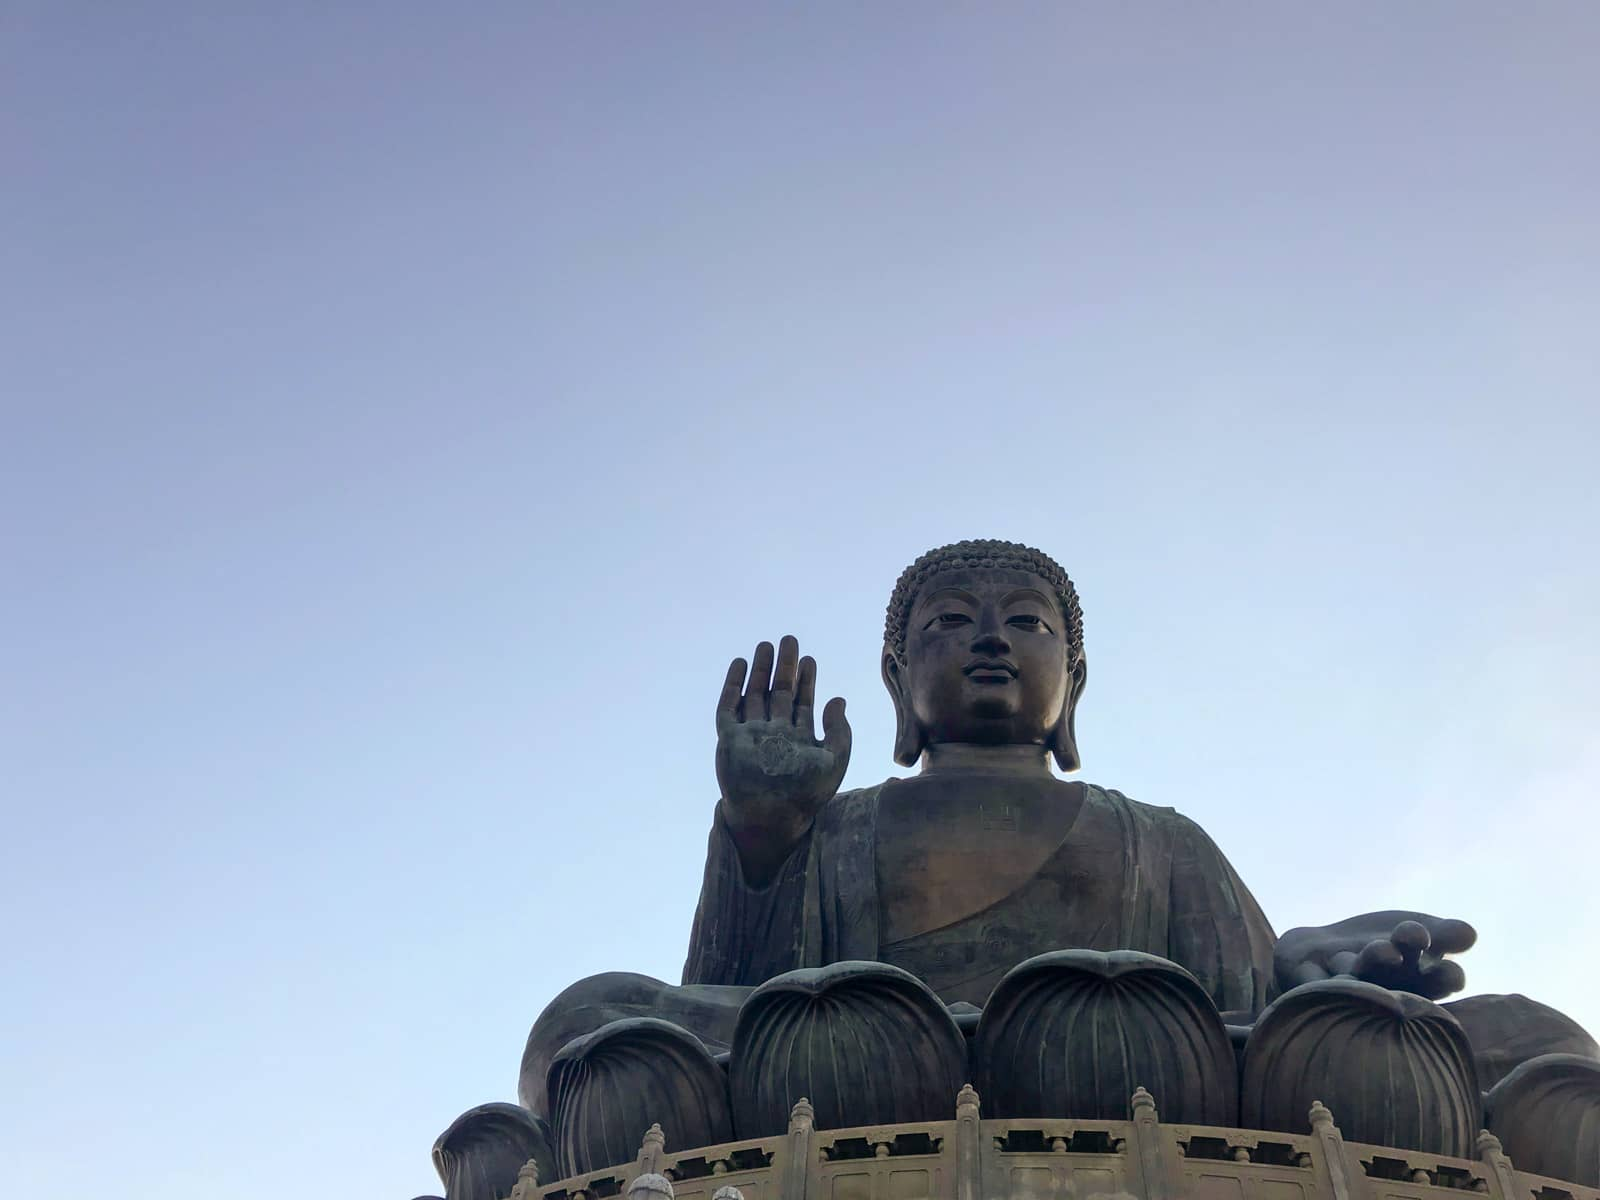 A very large Buddha statue from a low angle. The sky is clear and blue but it is dusk